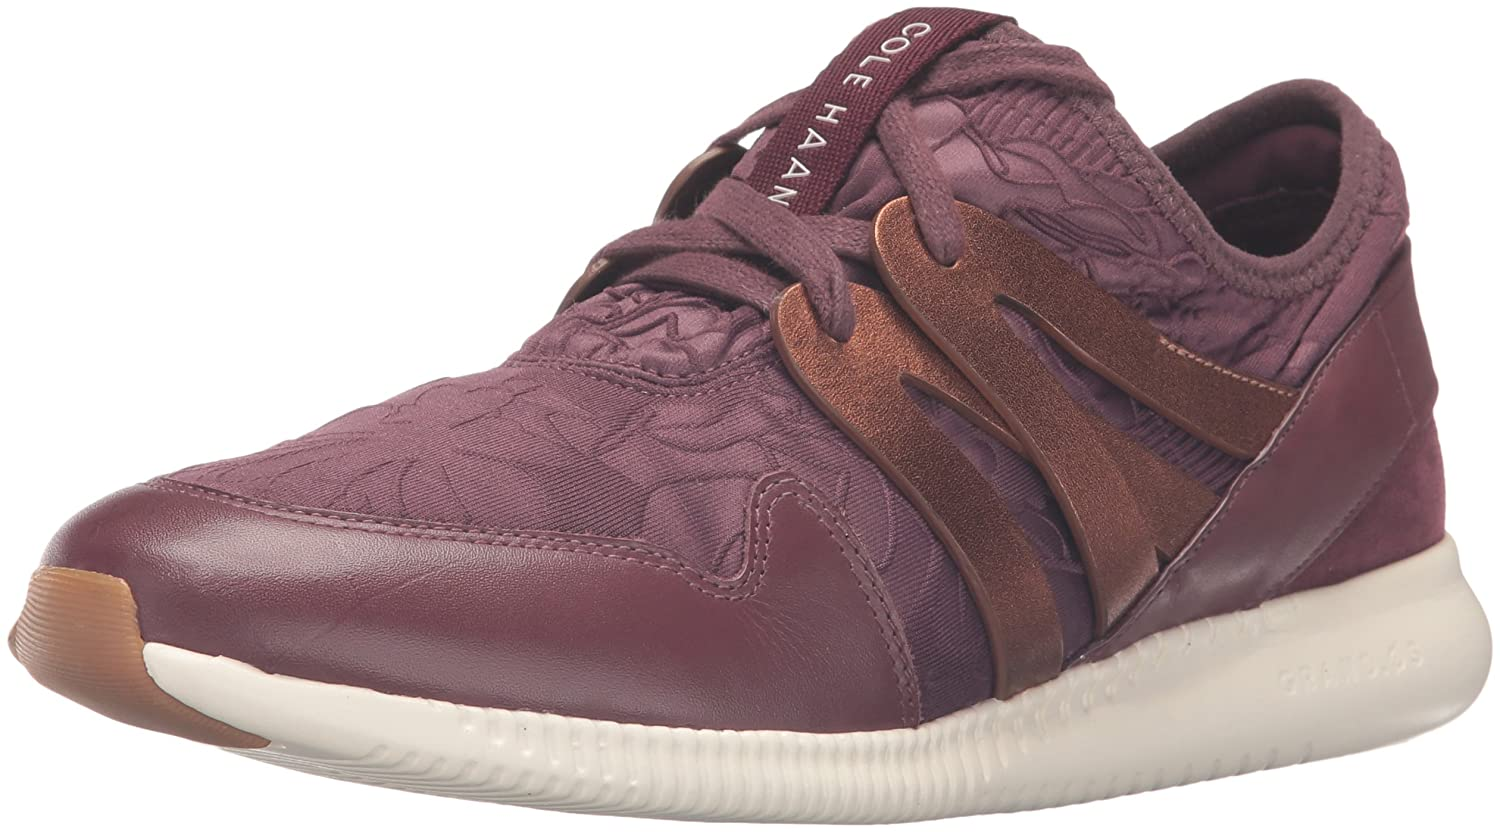 Cole Haan Women's 2.0 Studiogrand Trainer Fashion Sneaker B01ITEIDHK 6.5 B(M) US|Deep Berry Floral Embossed Neoprene/Leather/Deep Copper Metallic Leather/Ivory